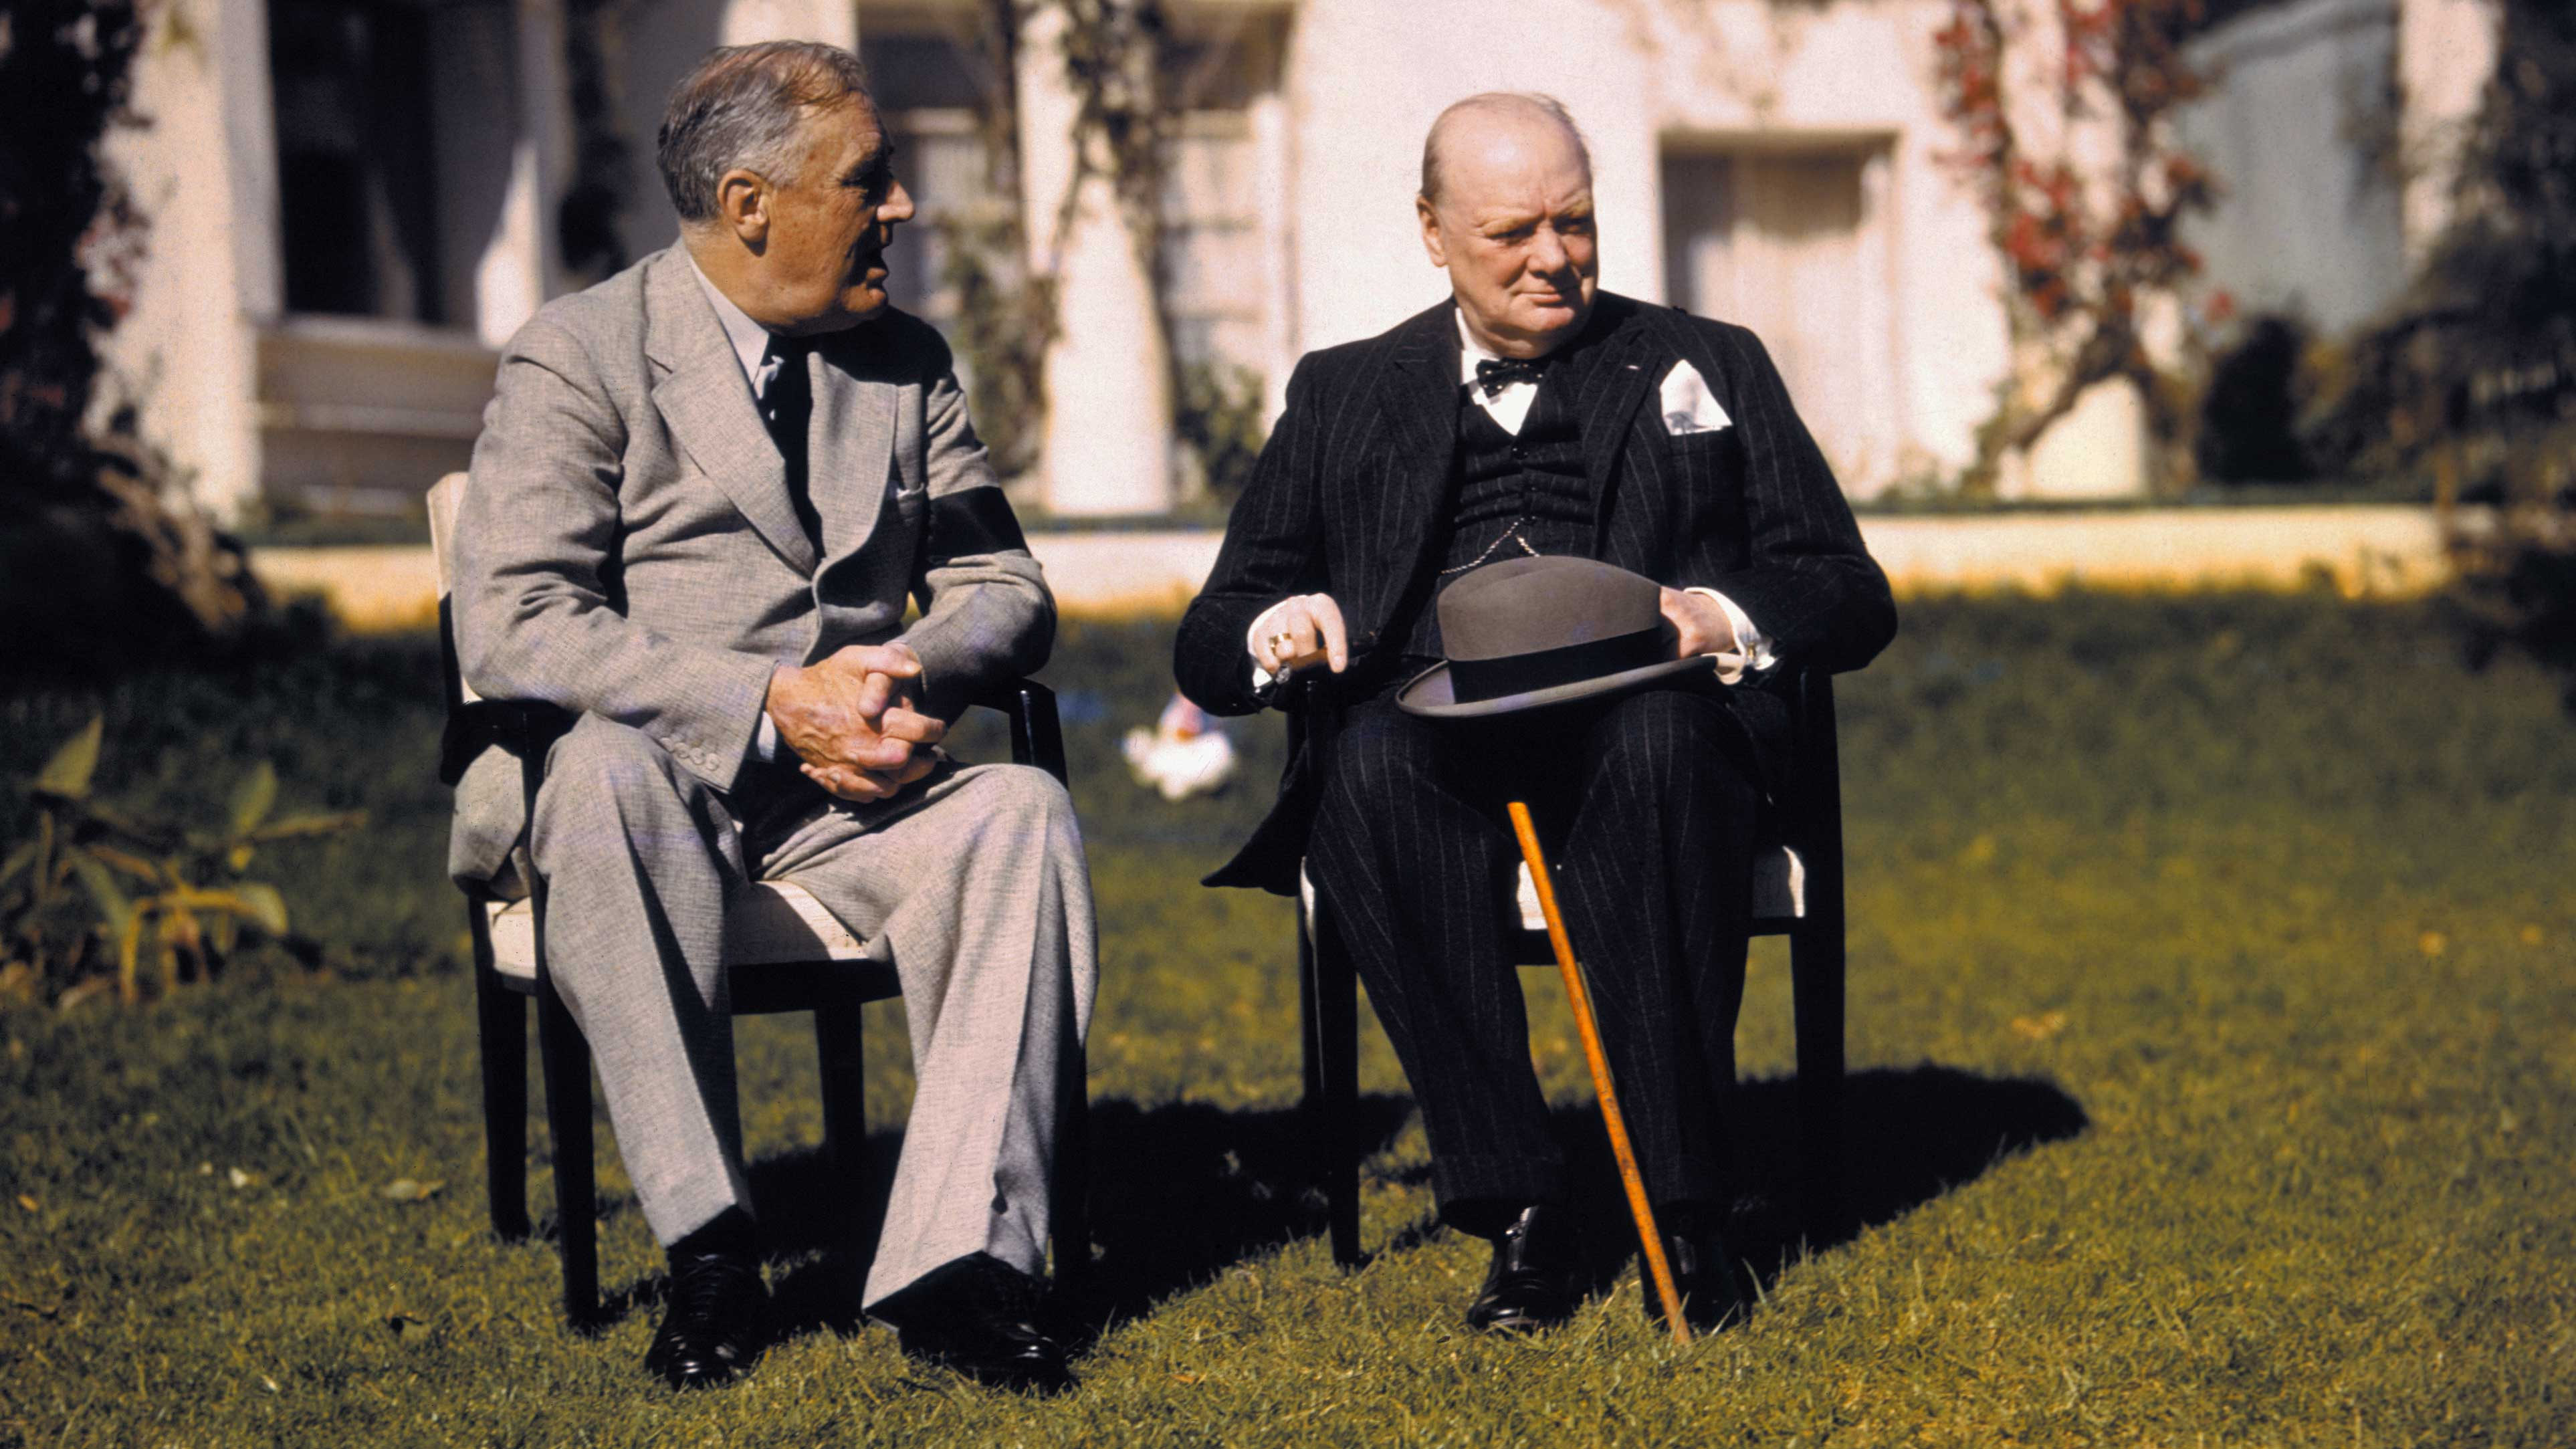 Churchill and Roosevelt Spent Years Planning D-Day